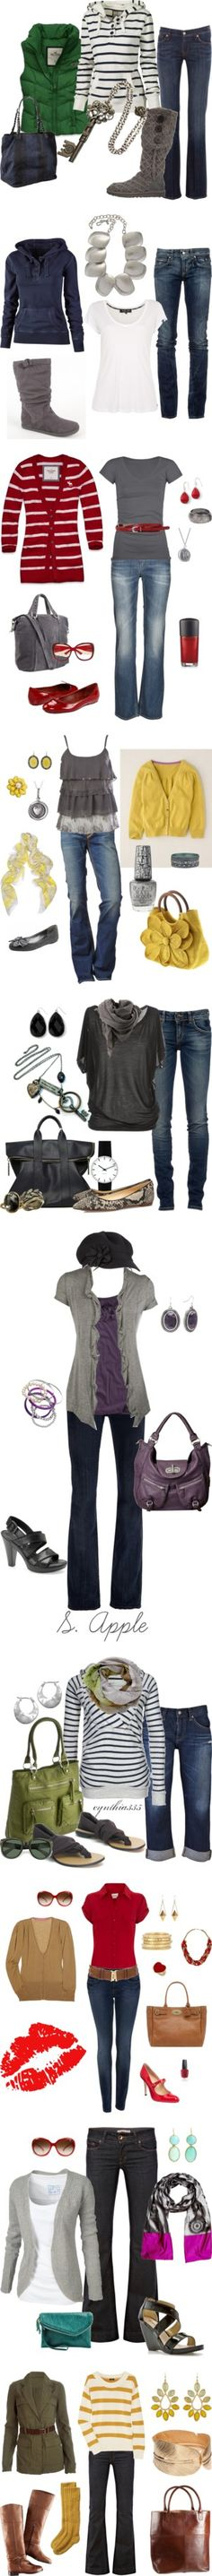 """Fall Fashion"" by riddlechick on Polyvore"